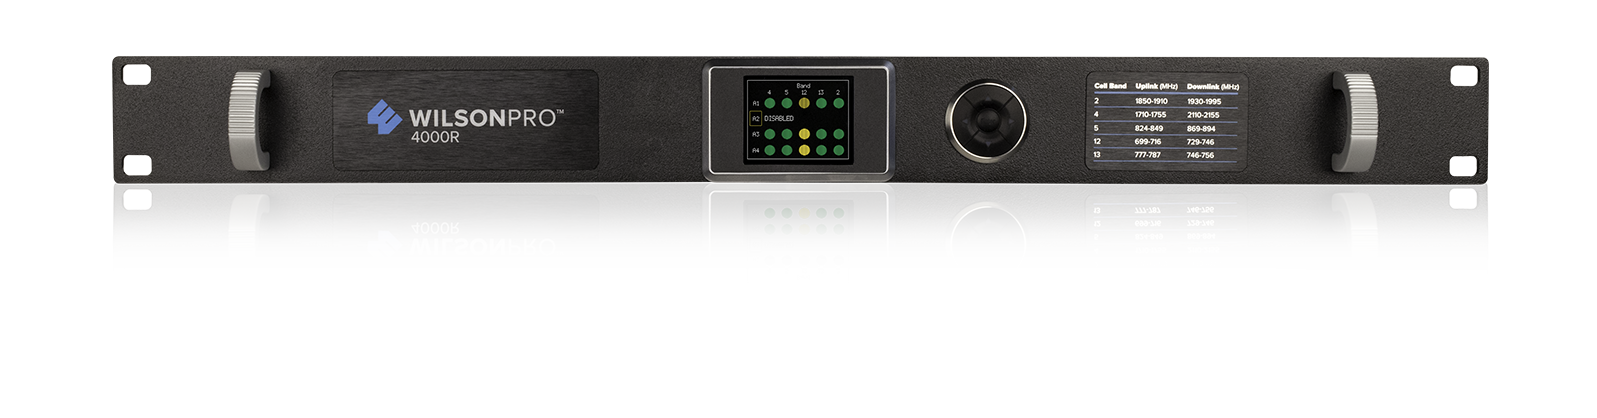 https://assets.wilsonelectronics.com/m/60ae99bb3fafbfd7/original/pro-4000r-460231-front.png